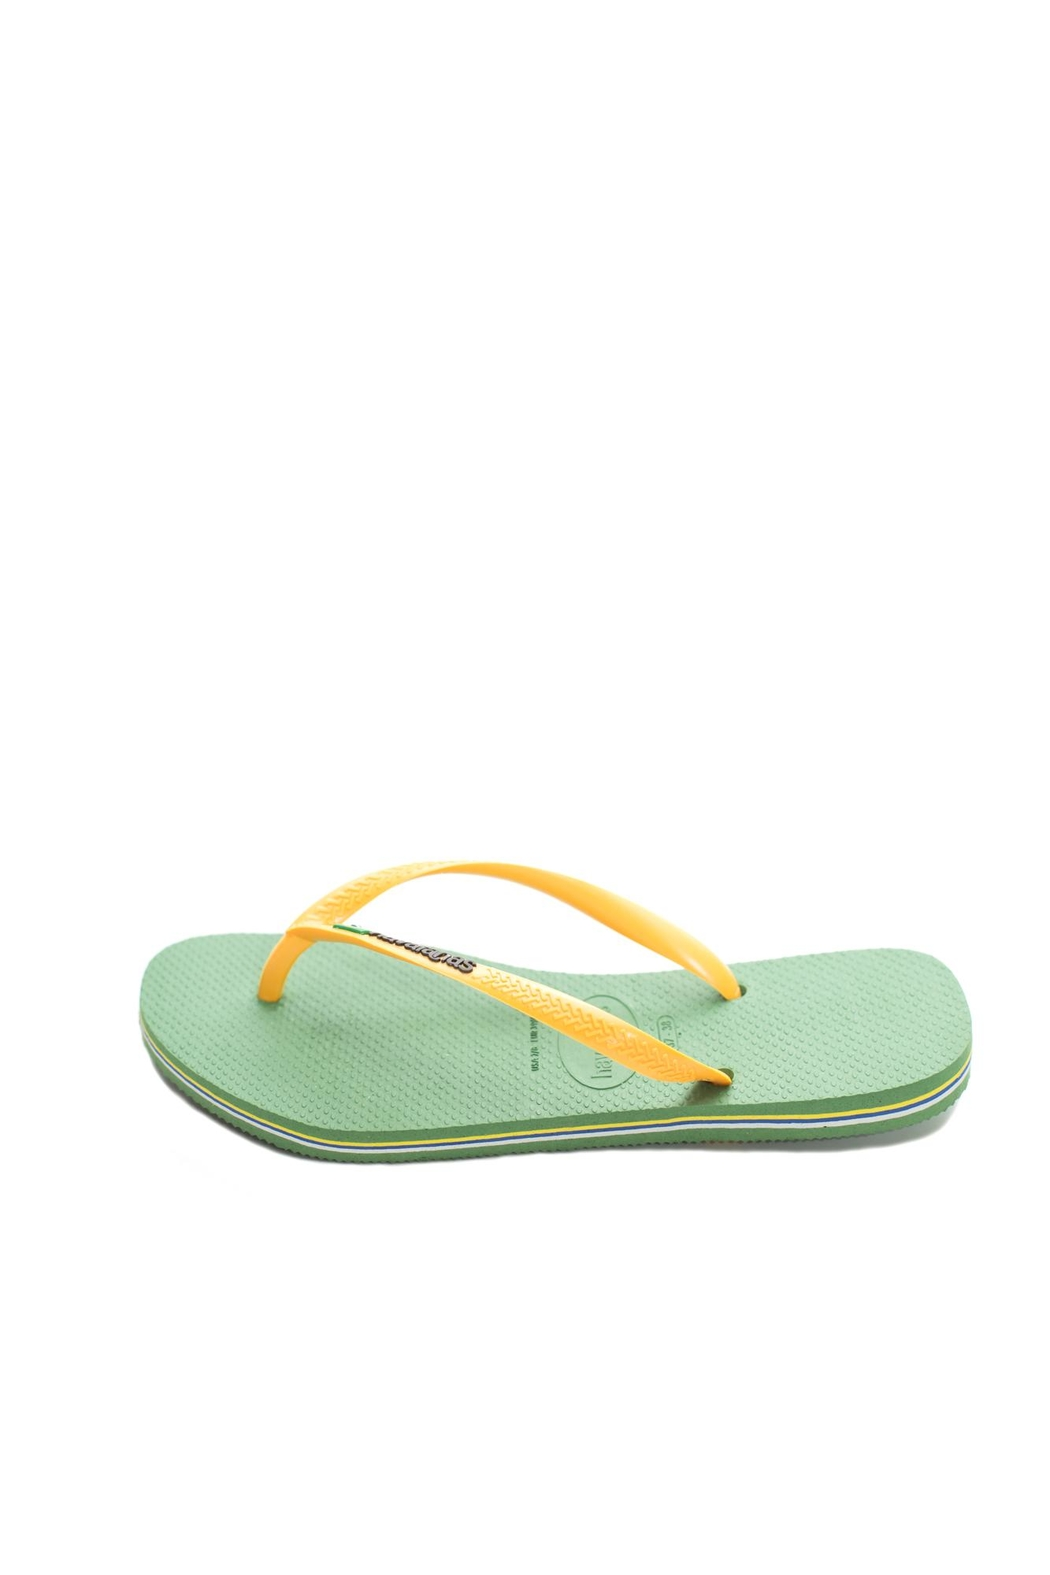 48a21766f40ce4 Havaianas Slim Brazil Sandal from Philadelphia by May 23 — Shoptiques